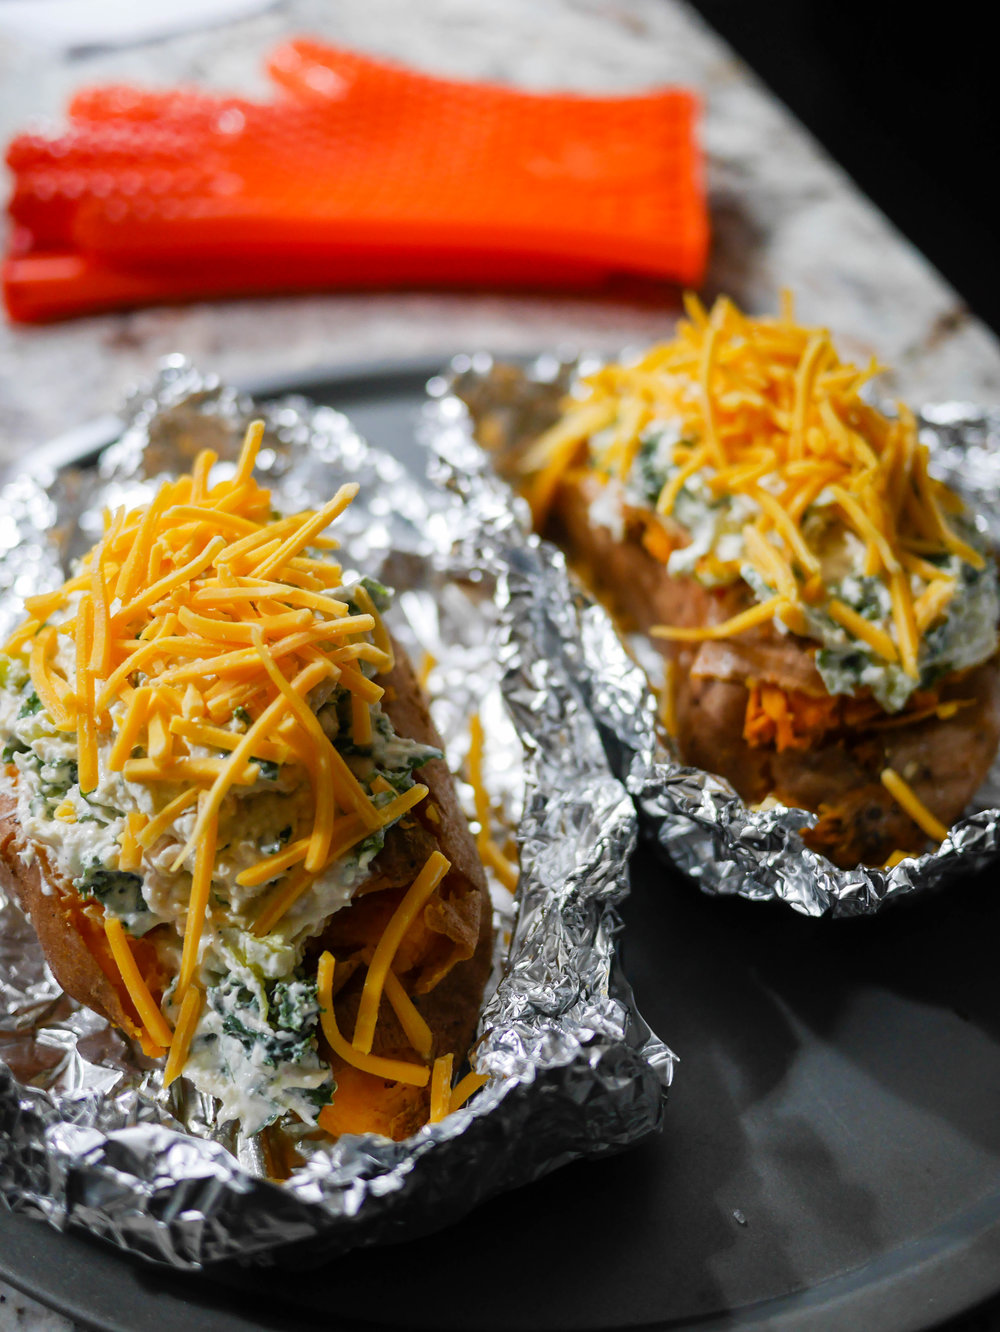 Load up the pre-baked sweet potatoes and top with shredded cheddar cheese. 15 more minutes and they're ready to enjoy!